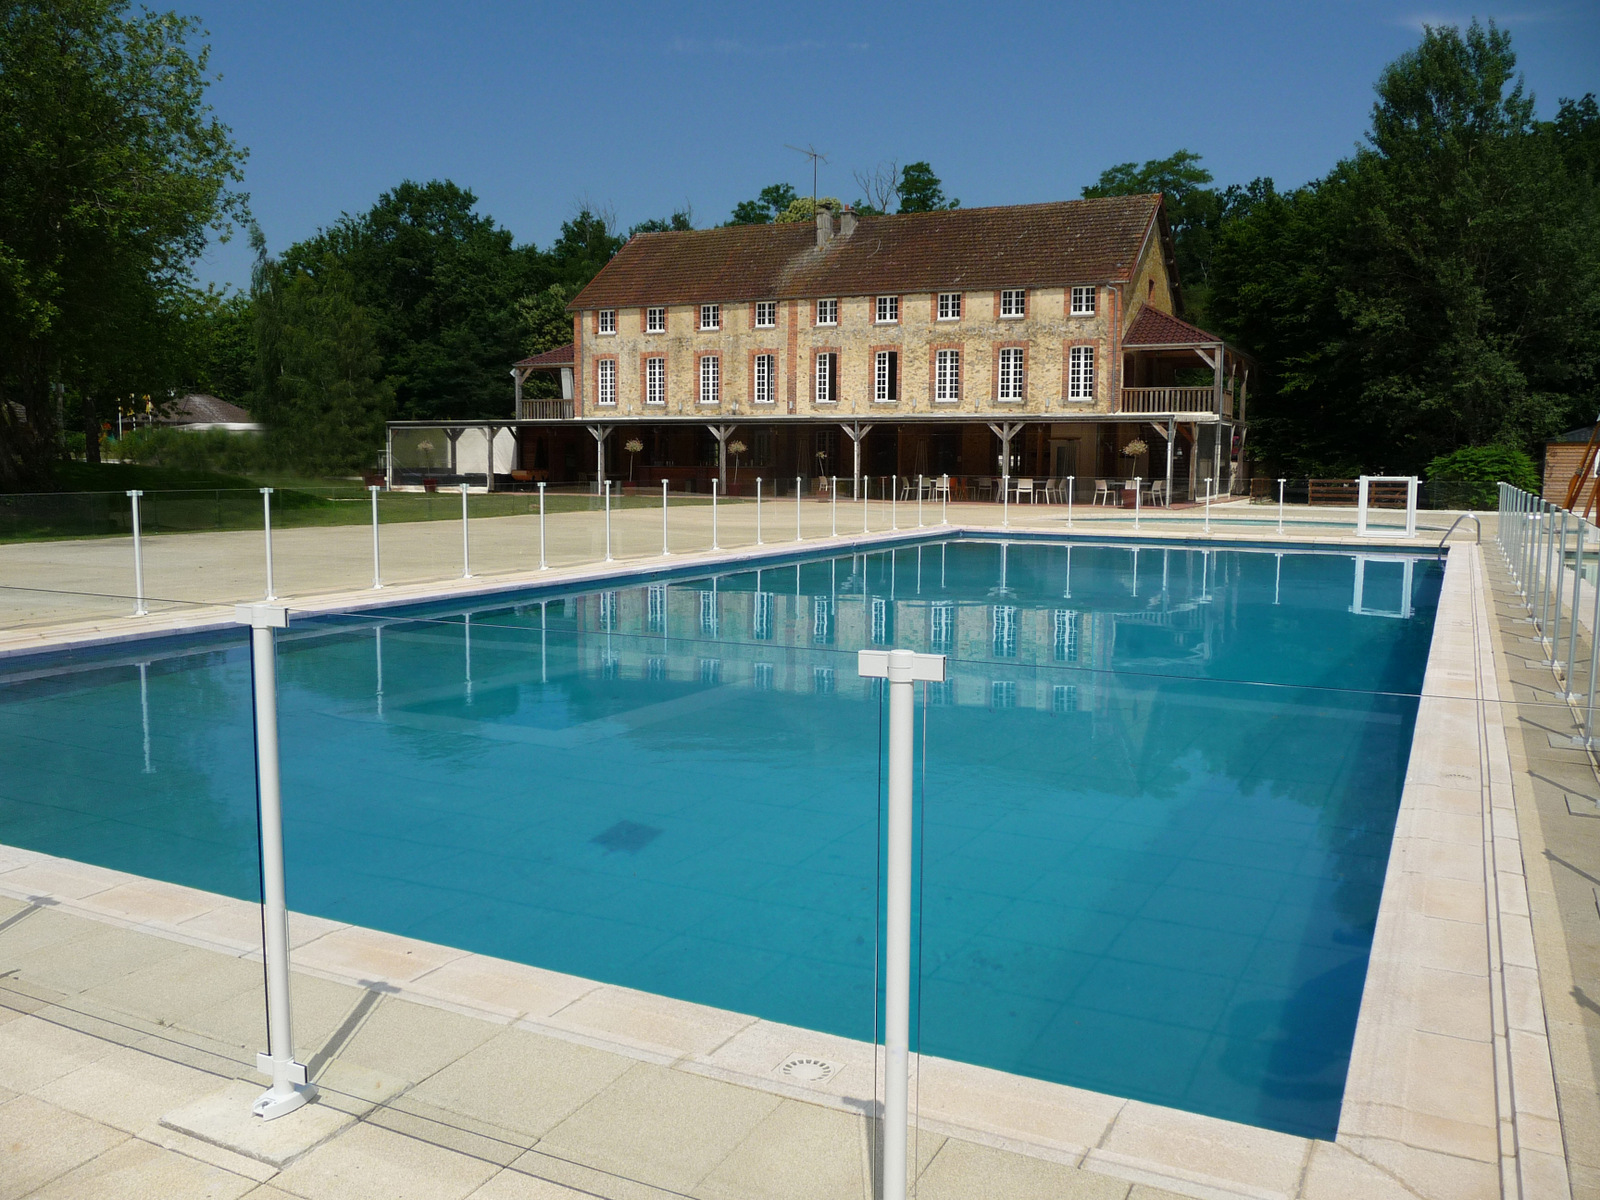 D co barriere piscine verre saint denis 27 barriere for Barriere de piscine amovible